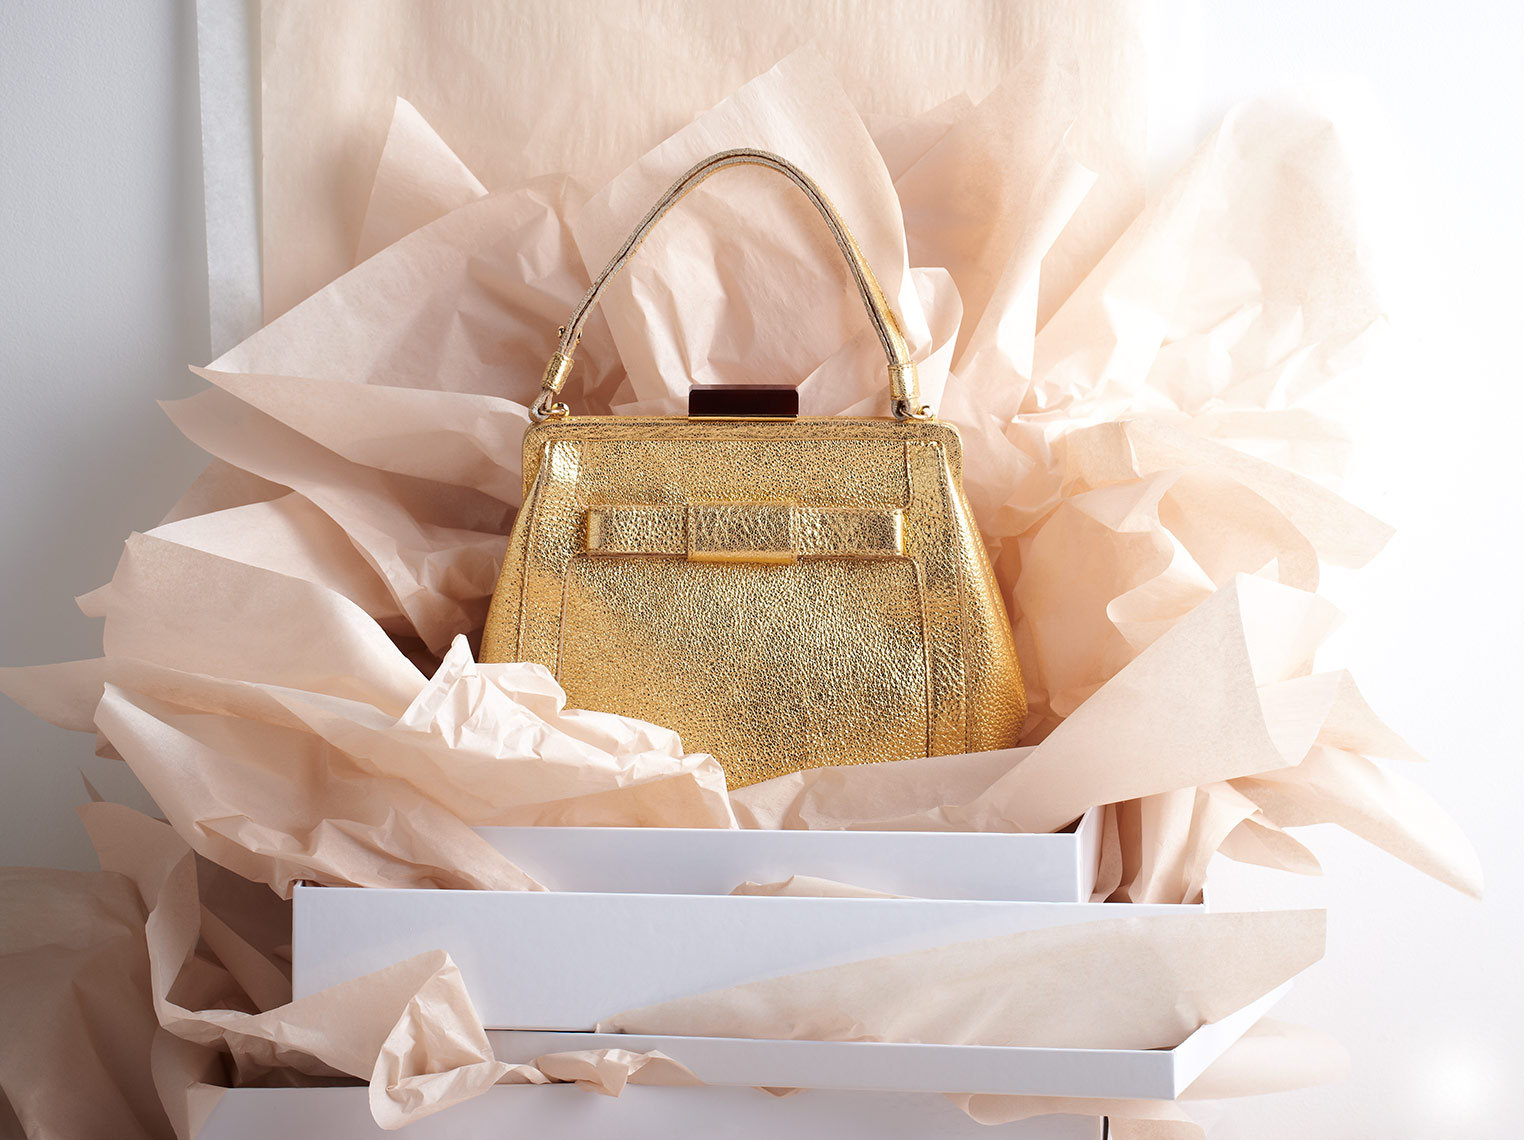 Gold shiny handbag with pink tissue paper.